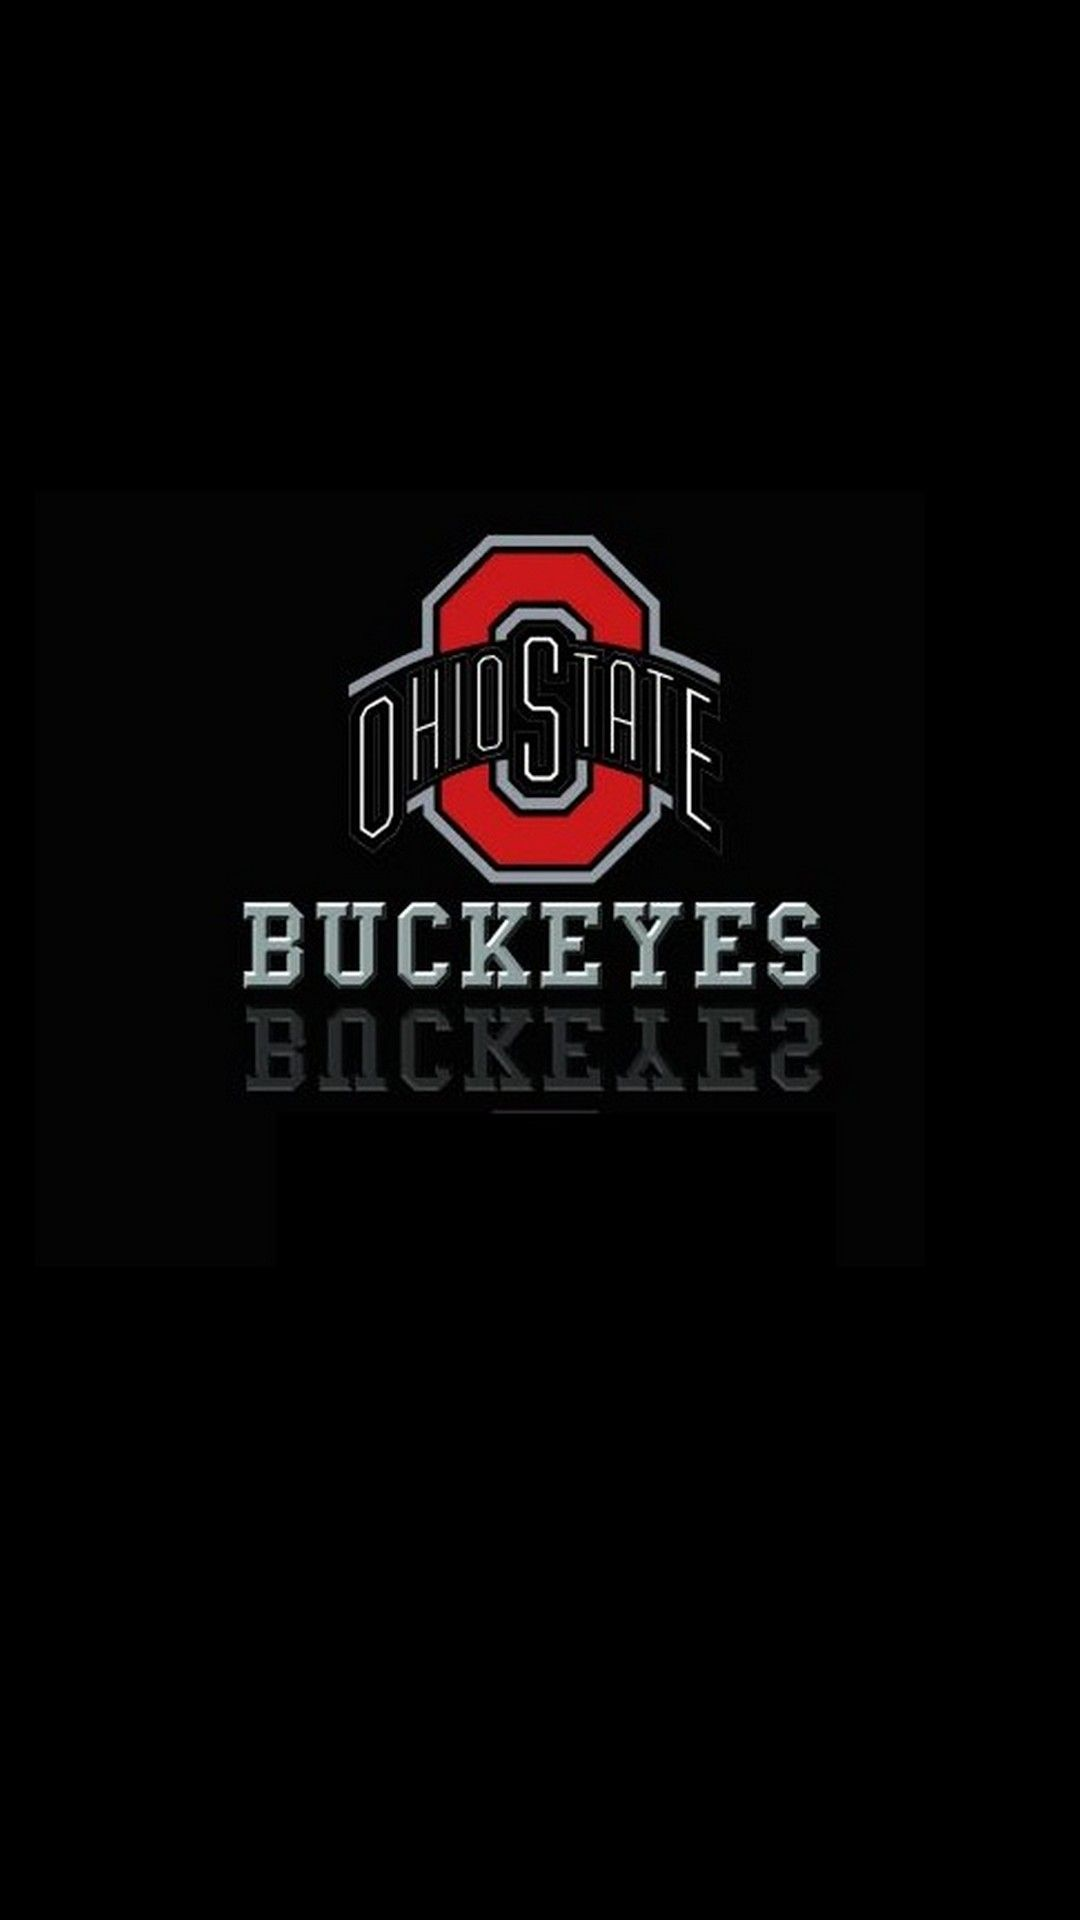 Cool Ohio State Wallpaper Ios On High Quality Wallpaper On Snowman Wallpapers Com In 2020 Ohio State Buckeyes Football Ohio State Buckeyes Ohio State Buckeyes Quotes